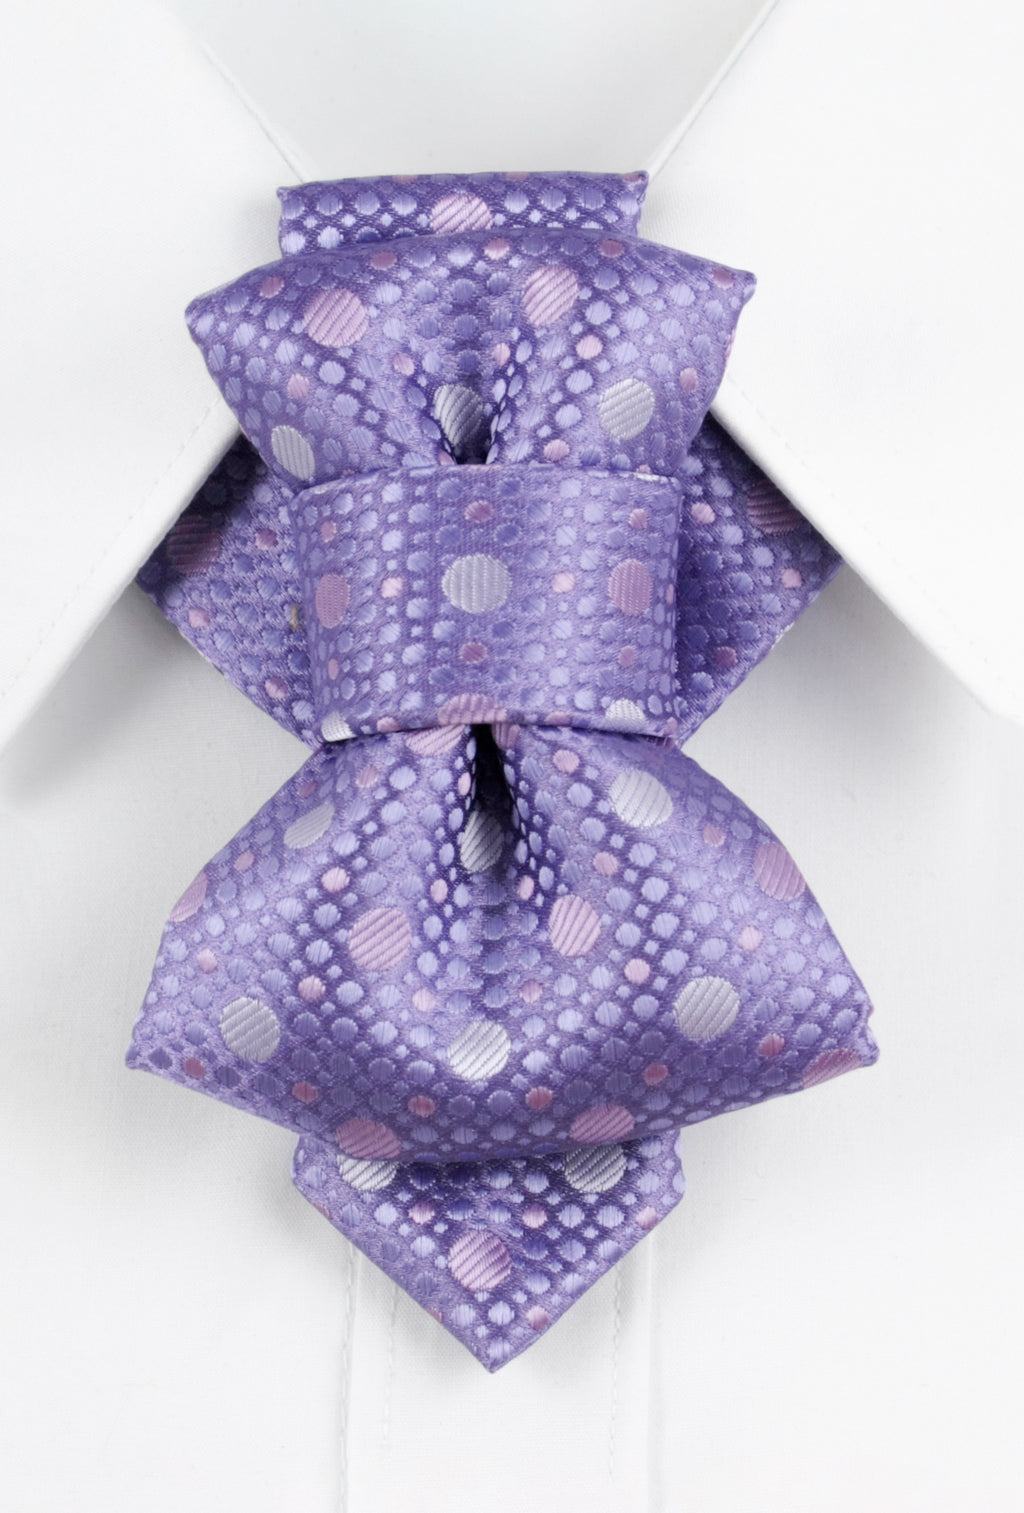 Bow Tie, Tie for wedding suite LILAC hopper tie Bow tie